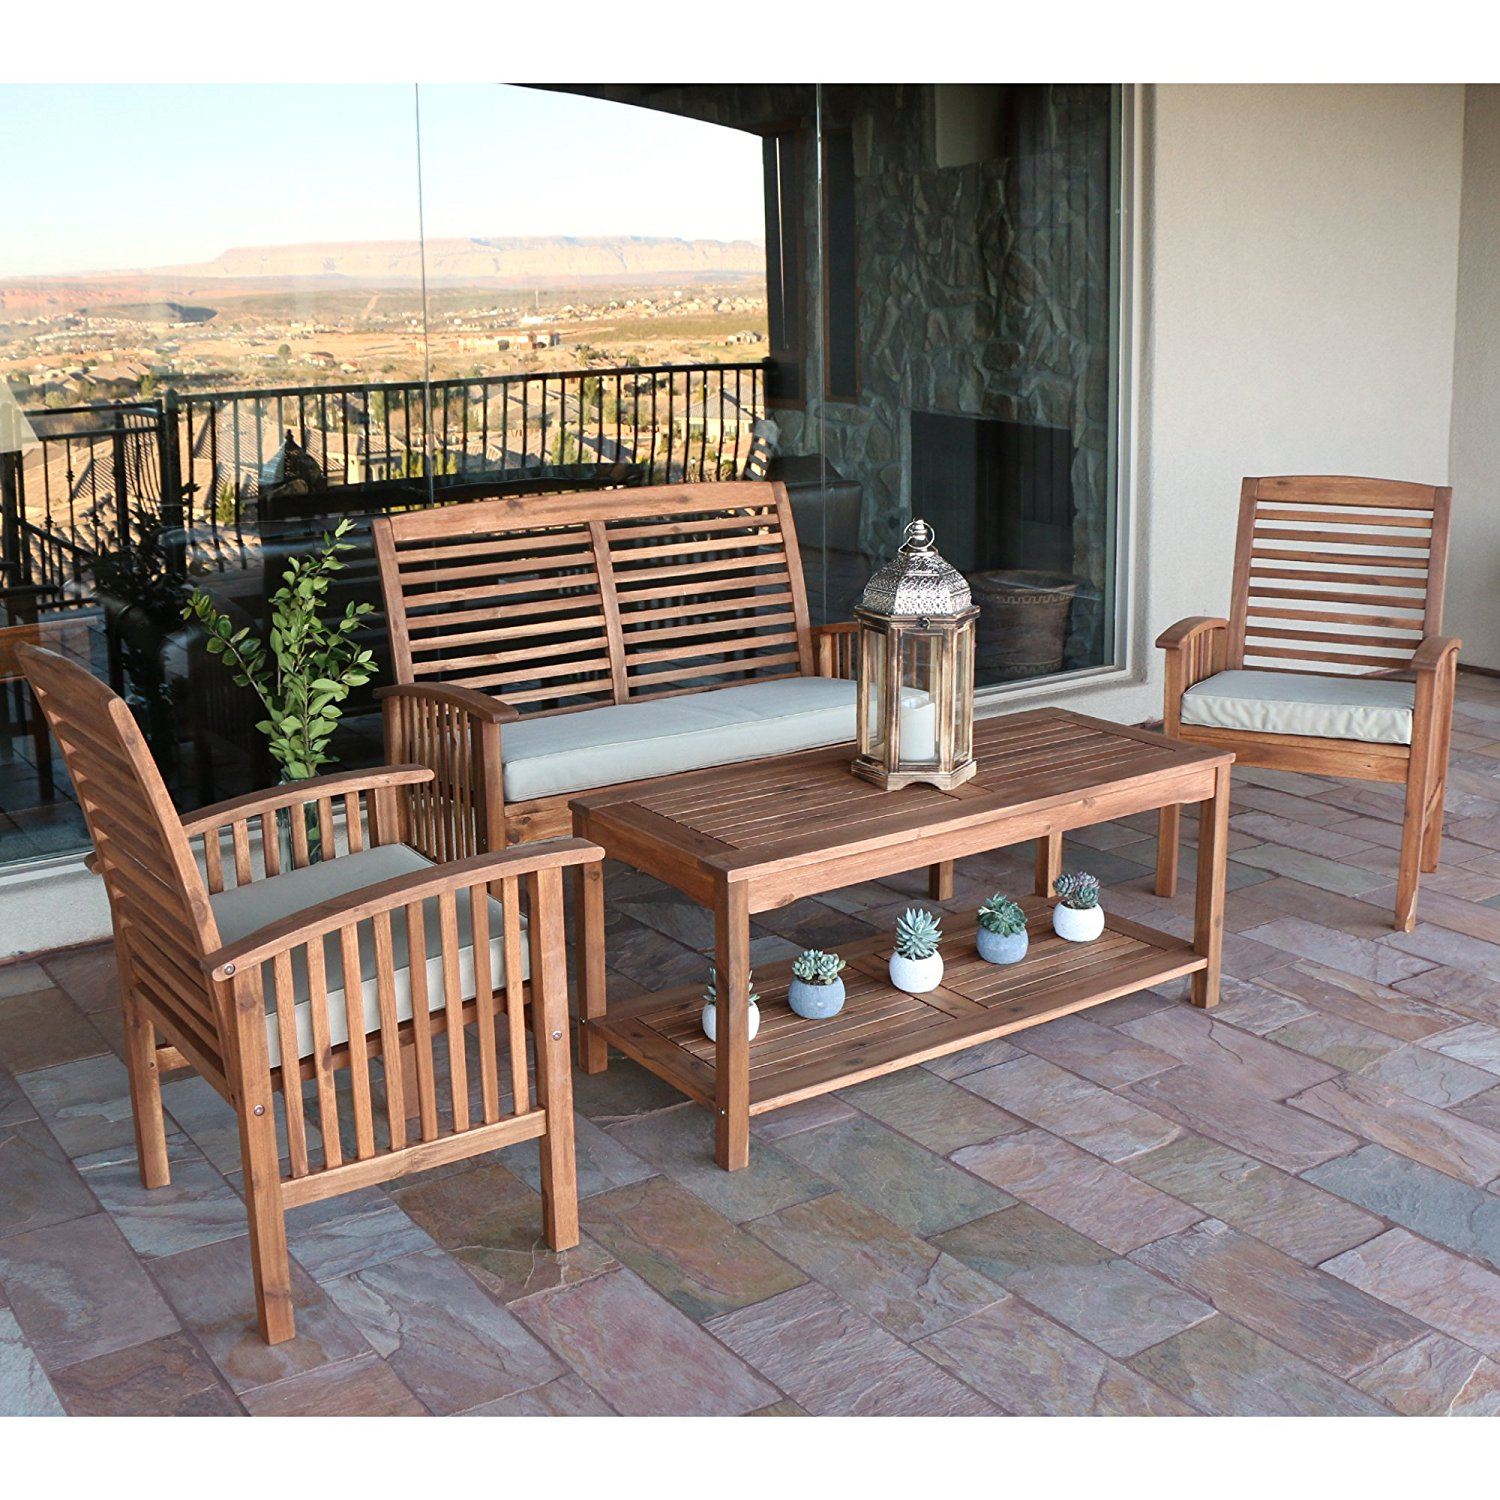 Patio Furniture Weights. 11 Tips To Secure Your Outdoor